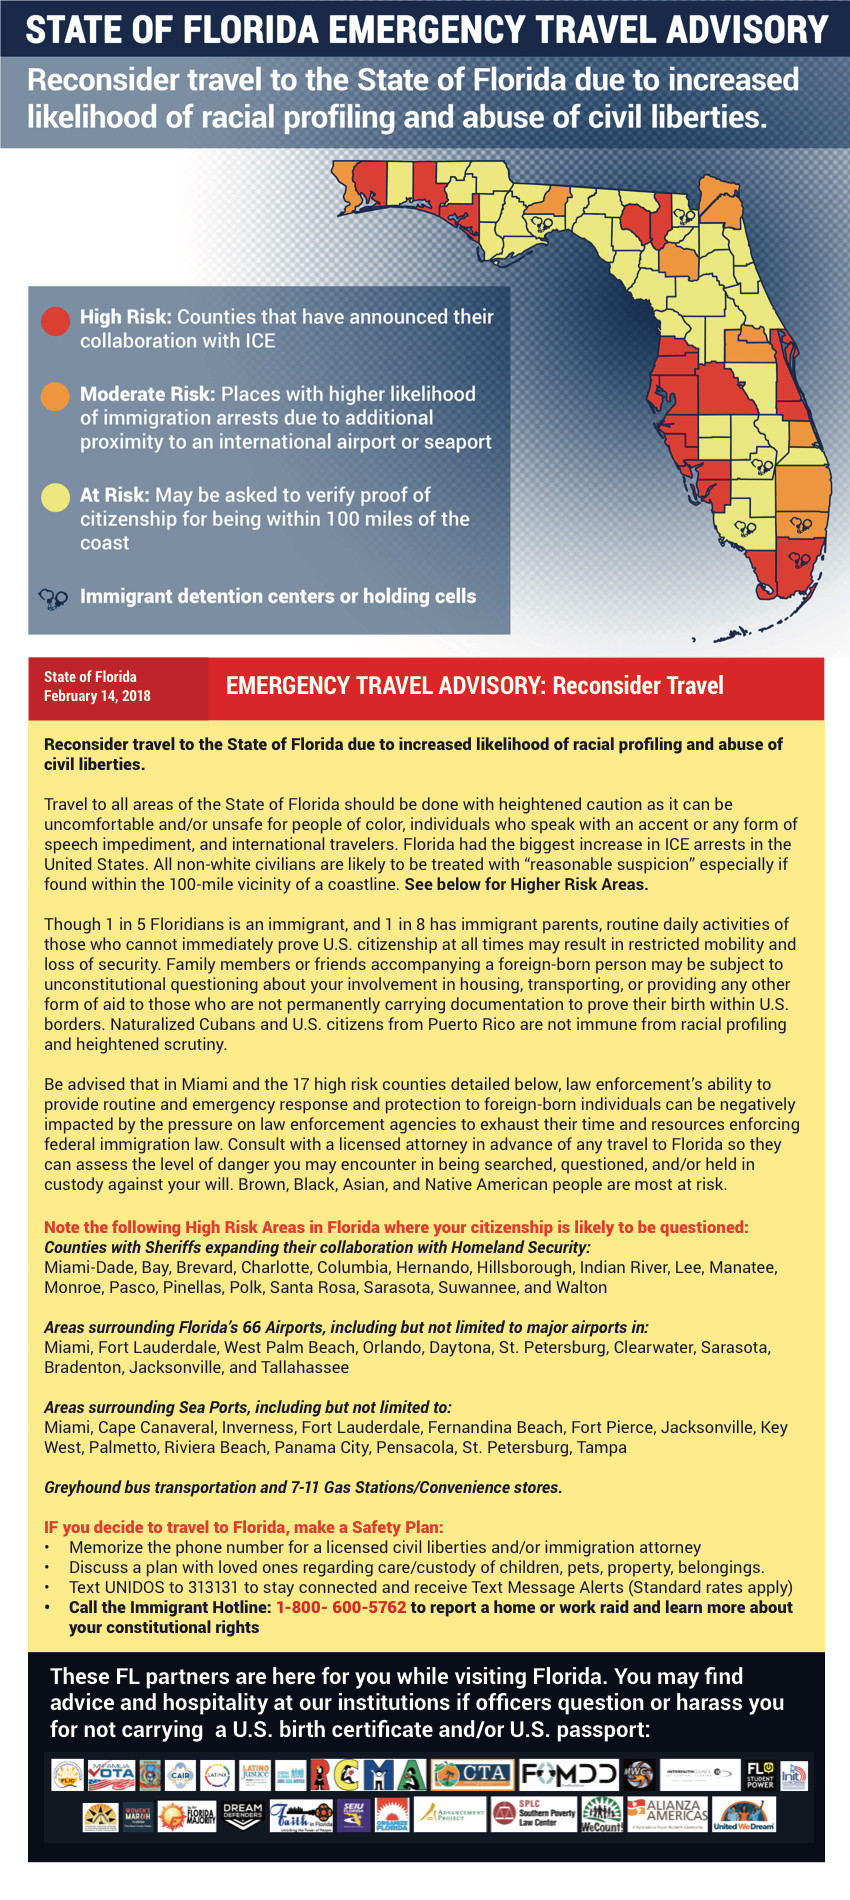 State of Florida Emergency Travel Advisory with high risk, moderate risk, and at risk counties.